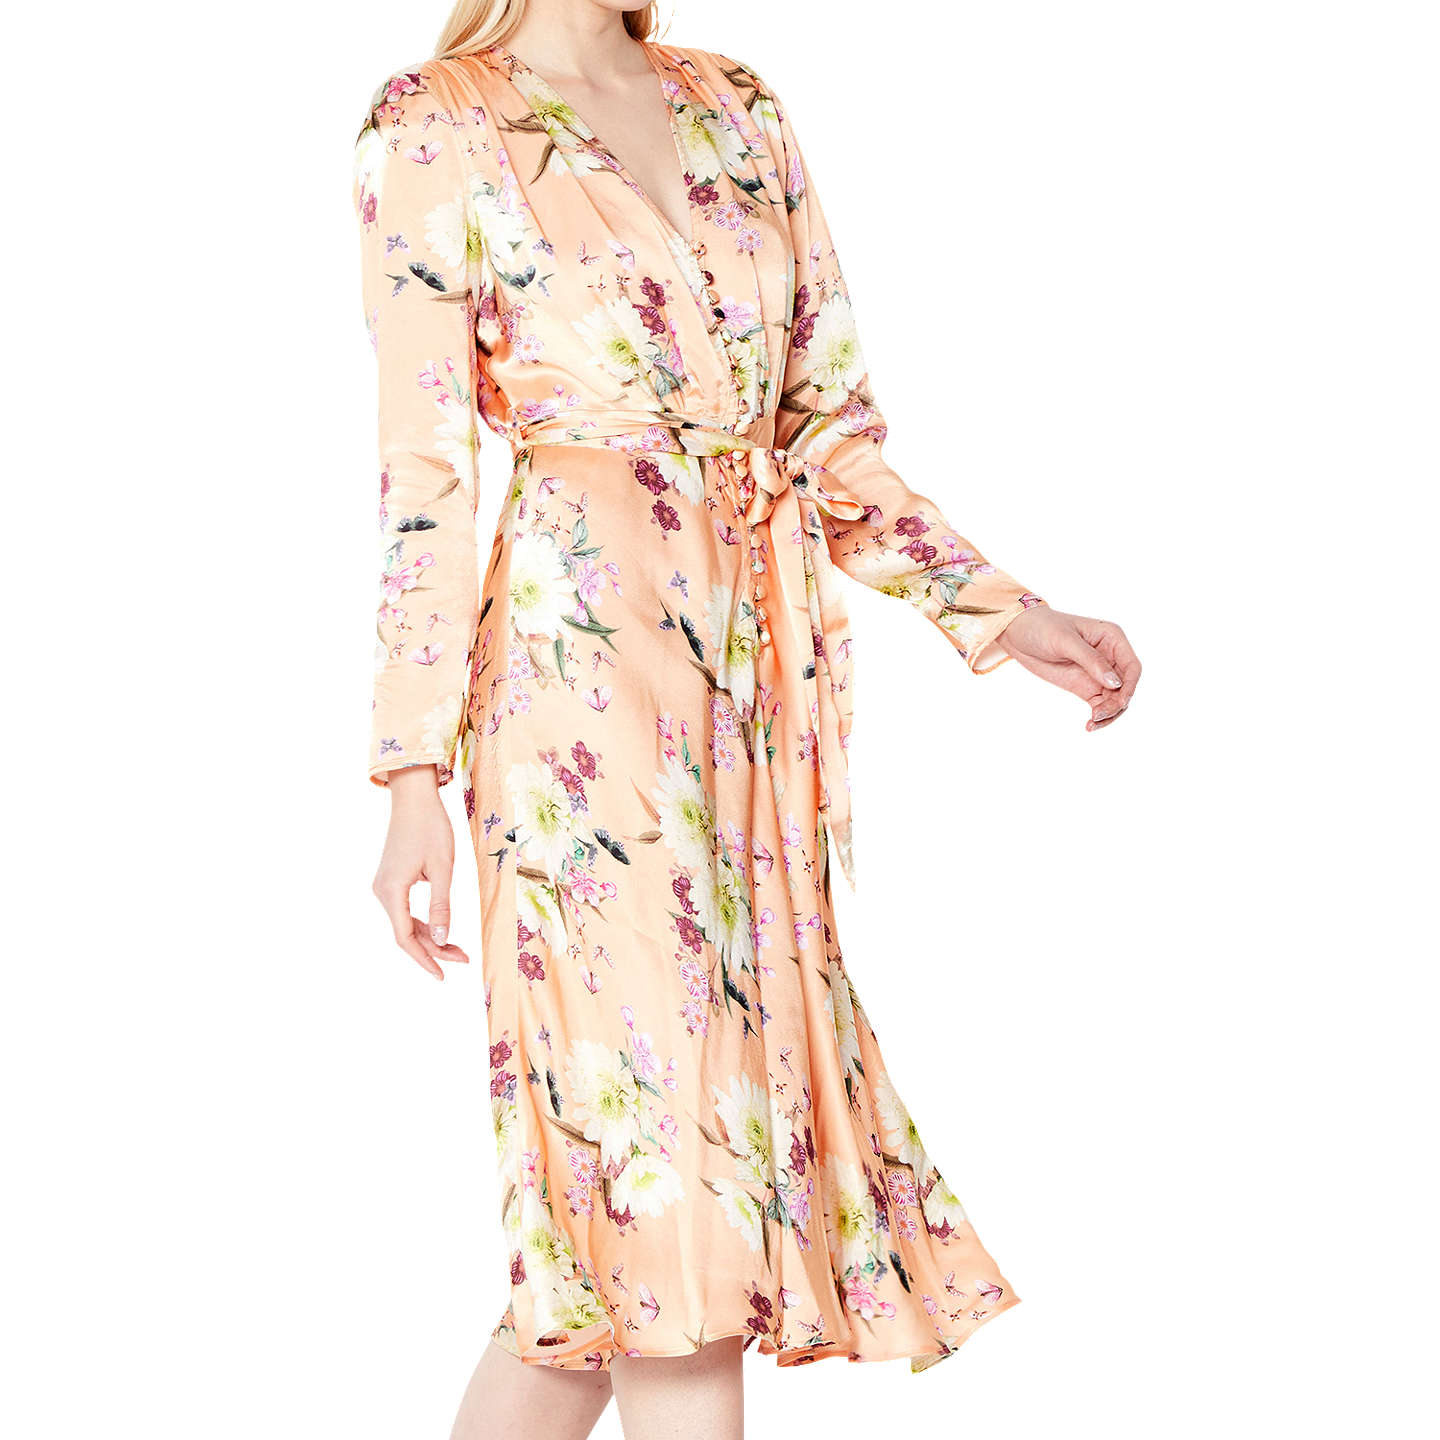 BuyGhost Meryl Dress, Summer Bloom, S Online at johnlewis.com